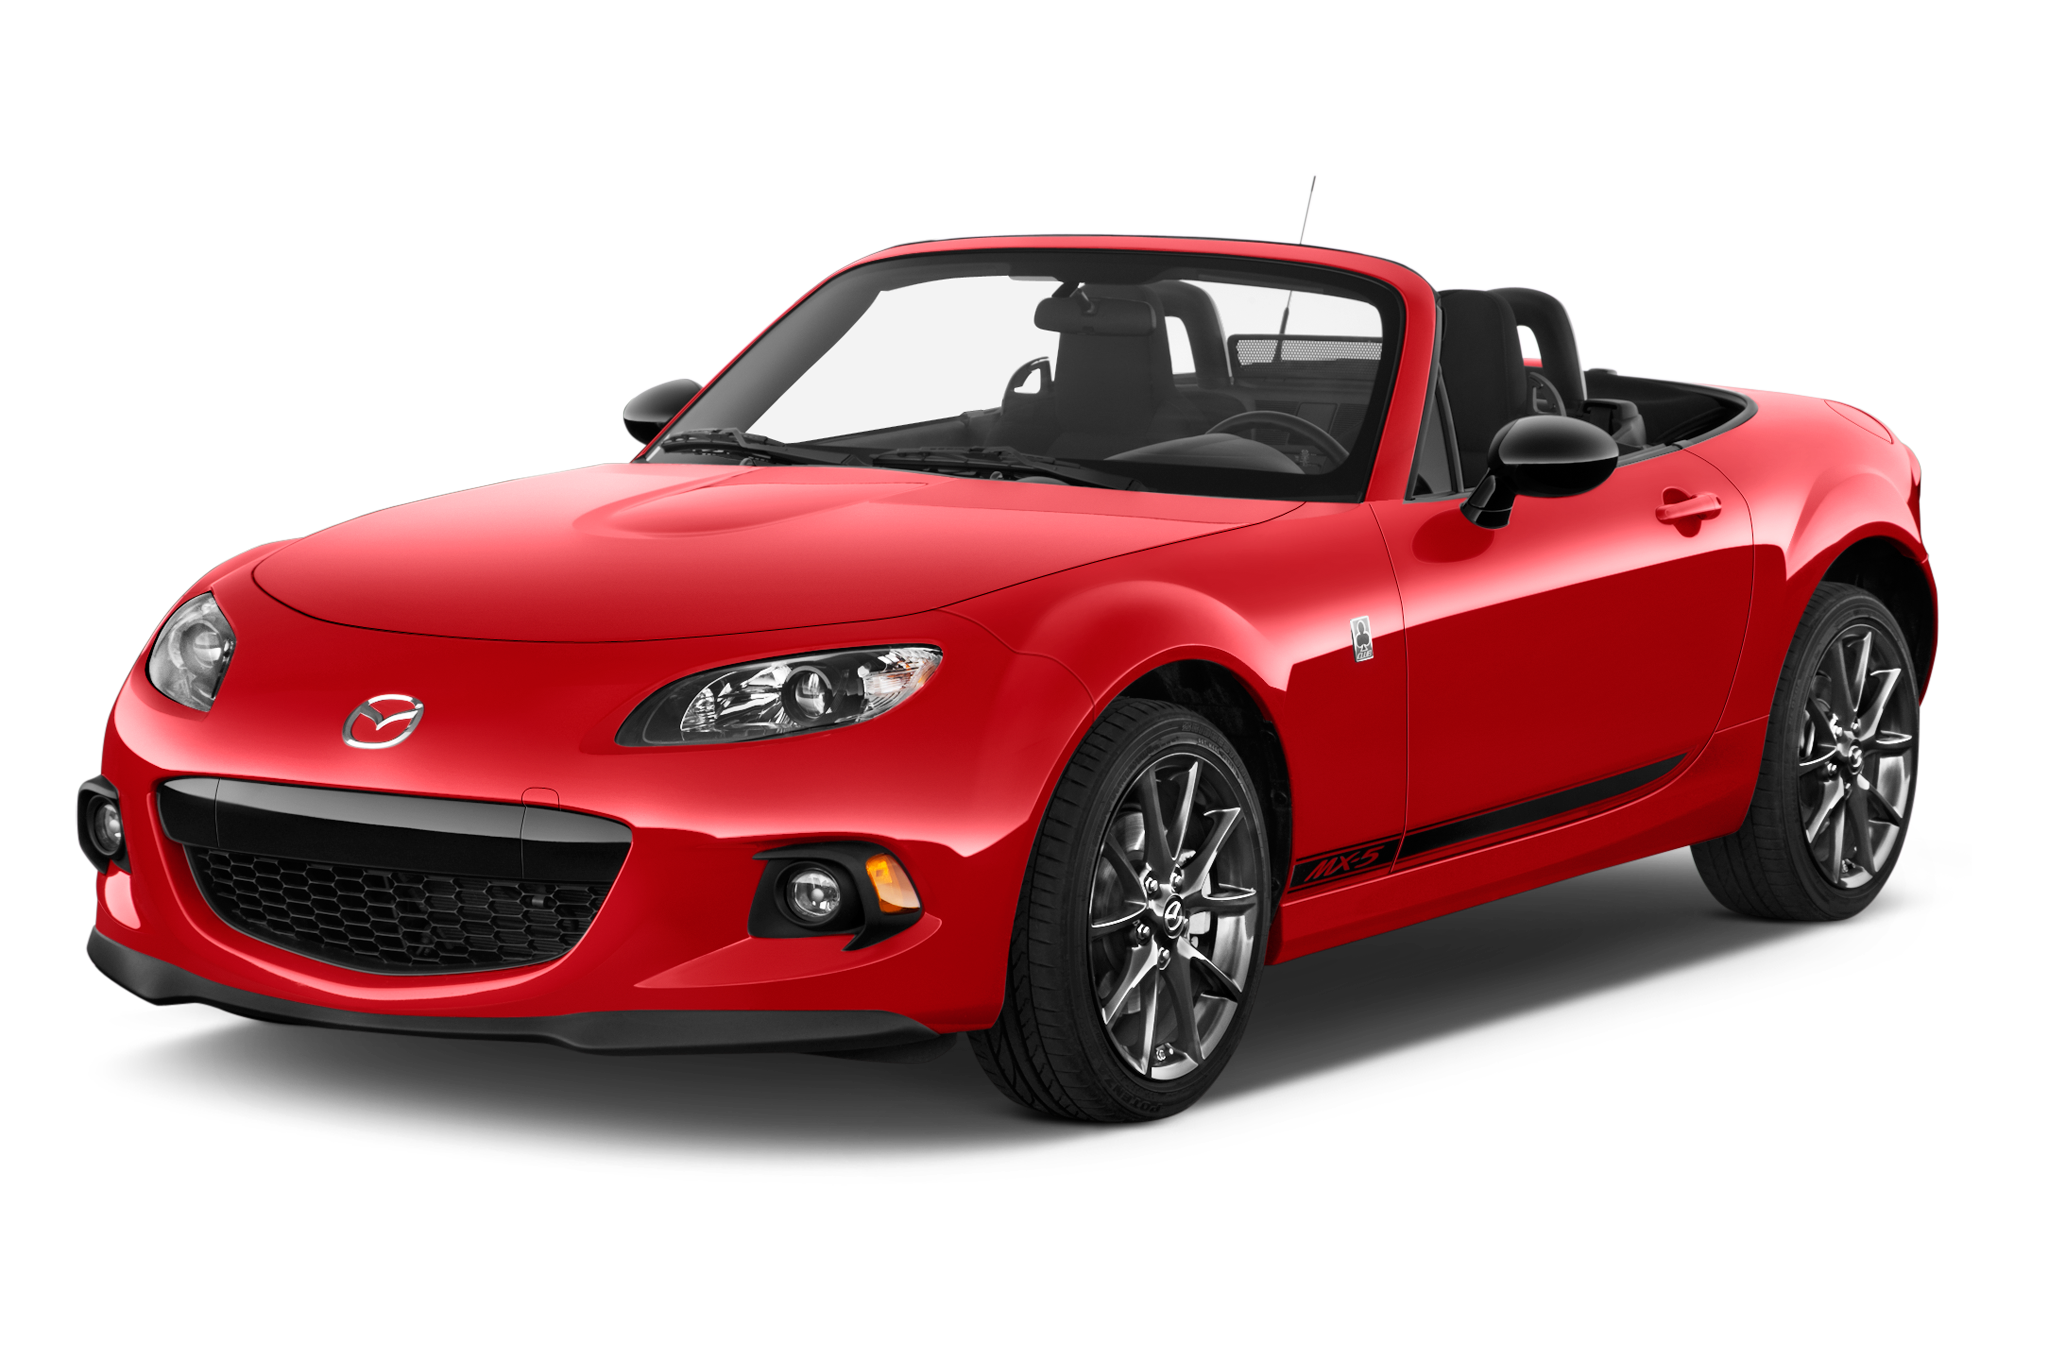 2015 mazda mx 5 miata specs and features msn autos. Black Bedroom Furniture Sets. Home Design Ideas